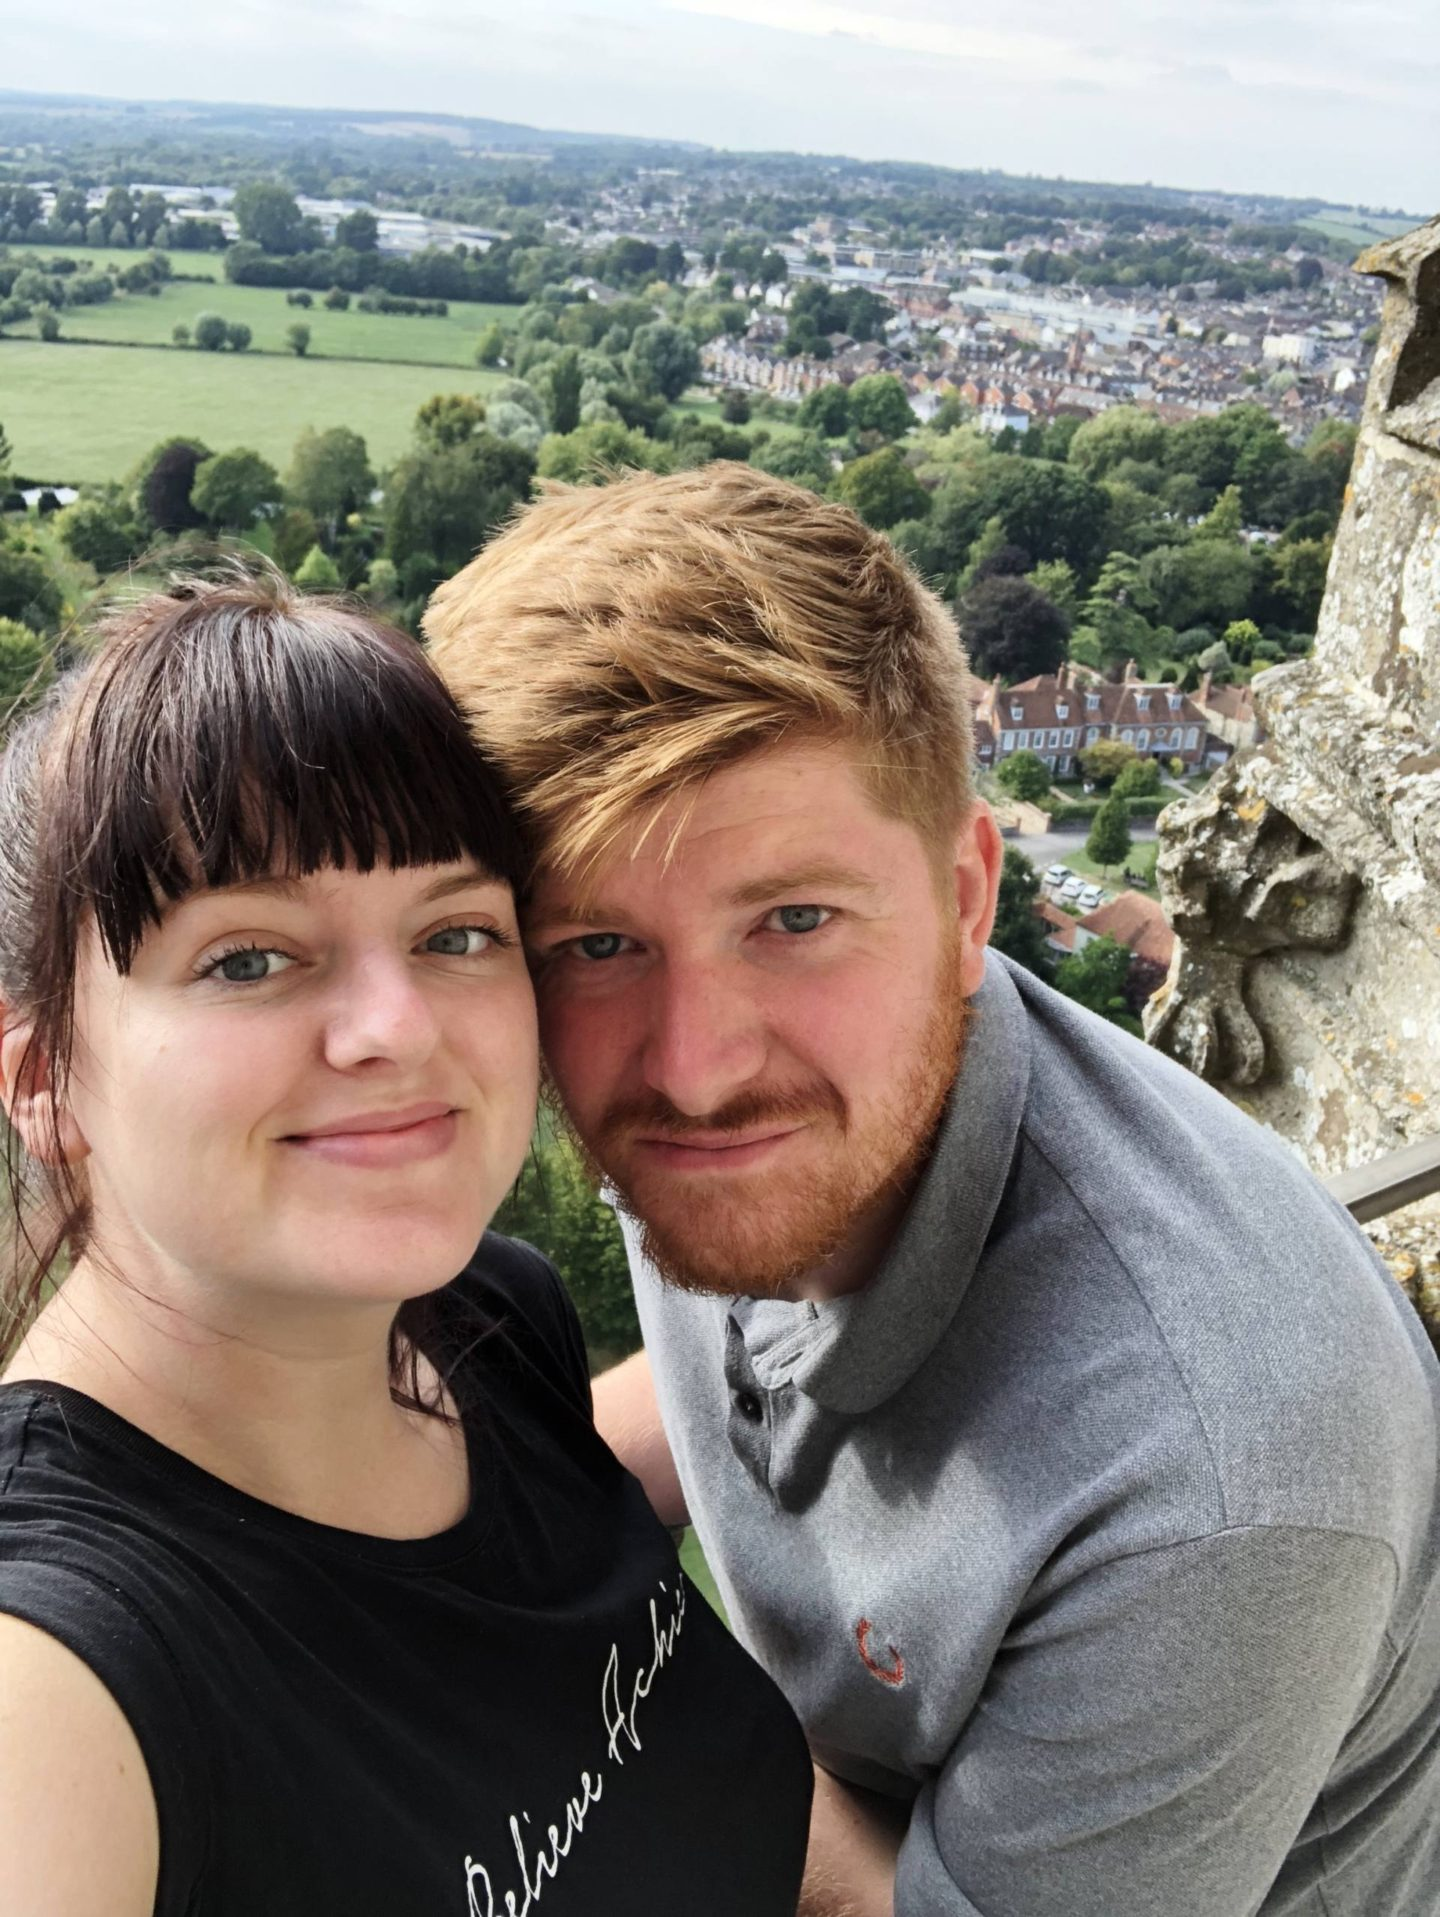 Salisbury Cathedral Tour Visit Wiltshire Aerial View Selfie